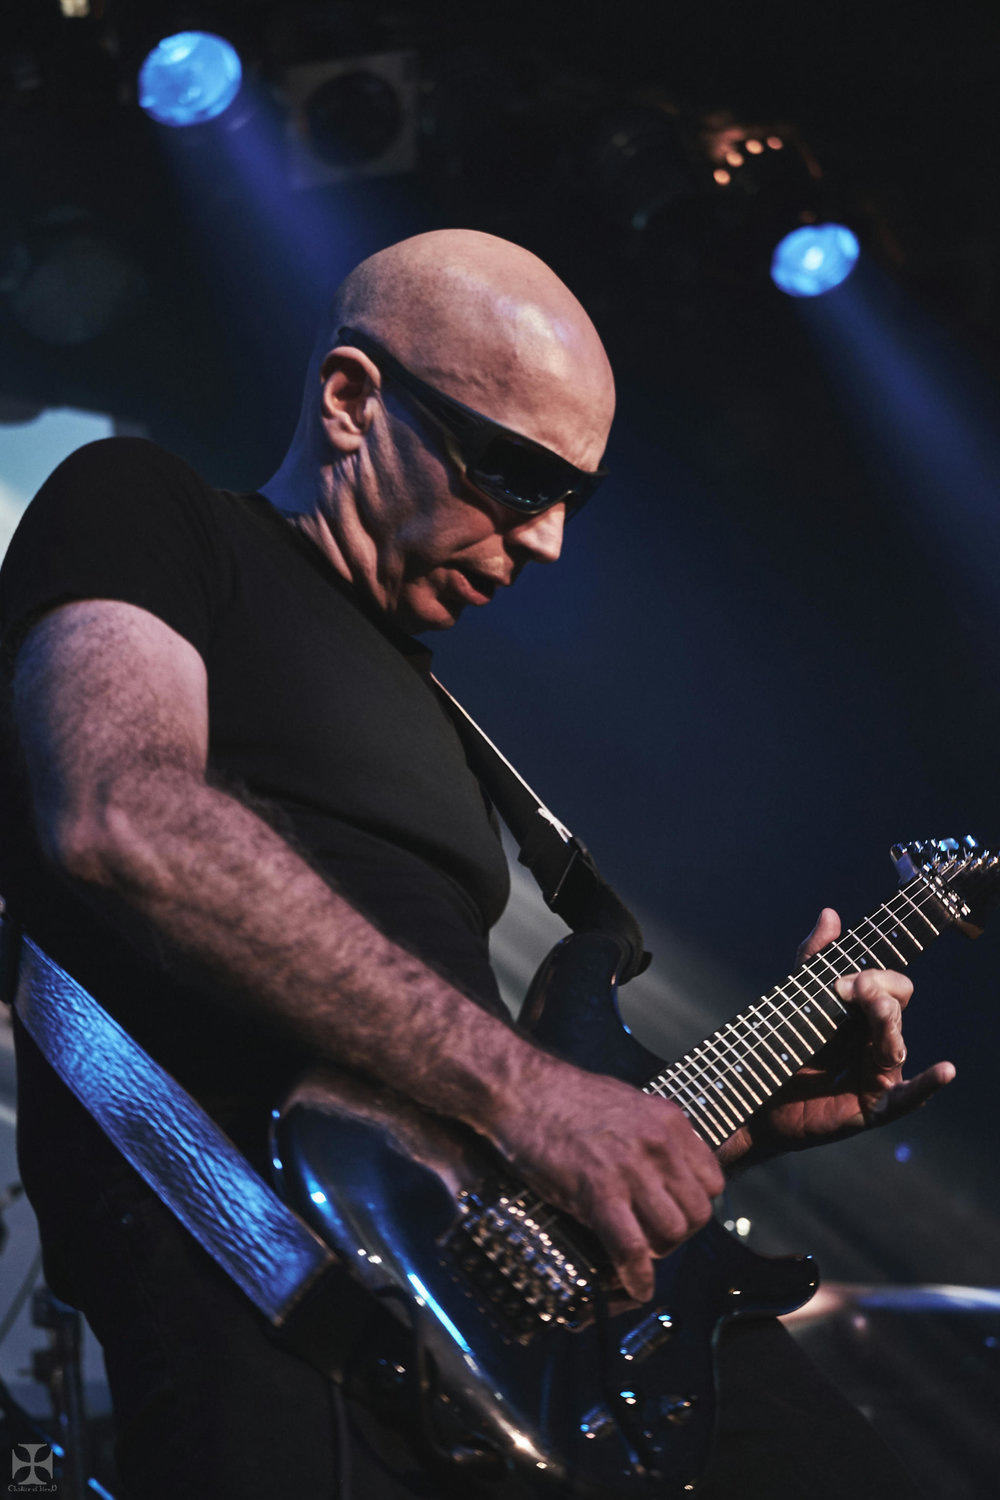 2018.12.04 Joe Satriani - DSCF6872_branded.jpg